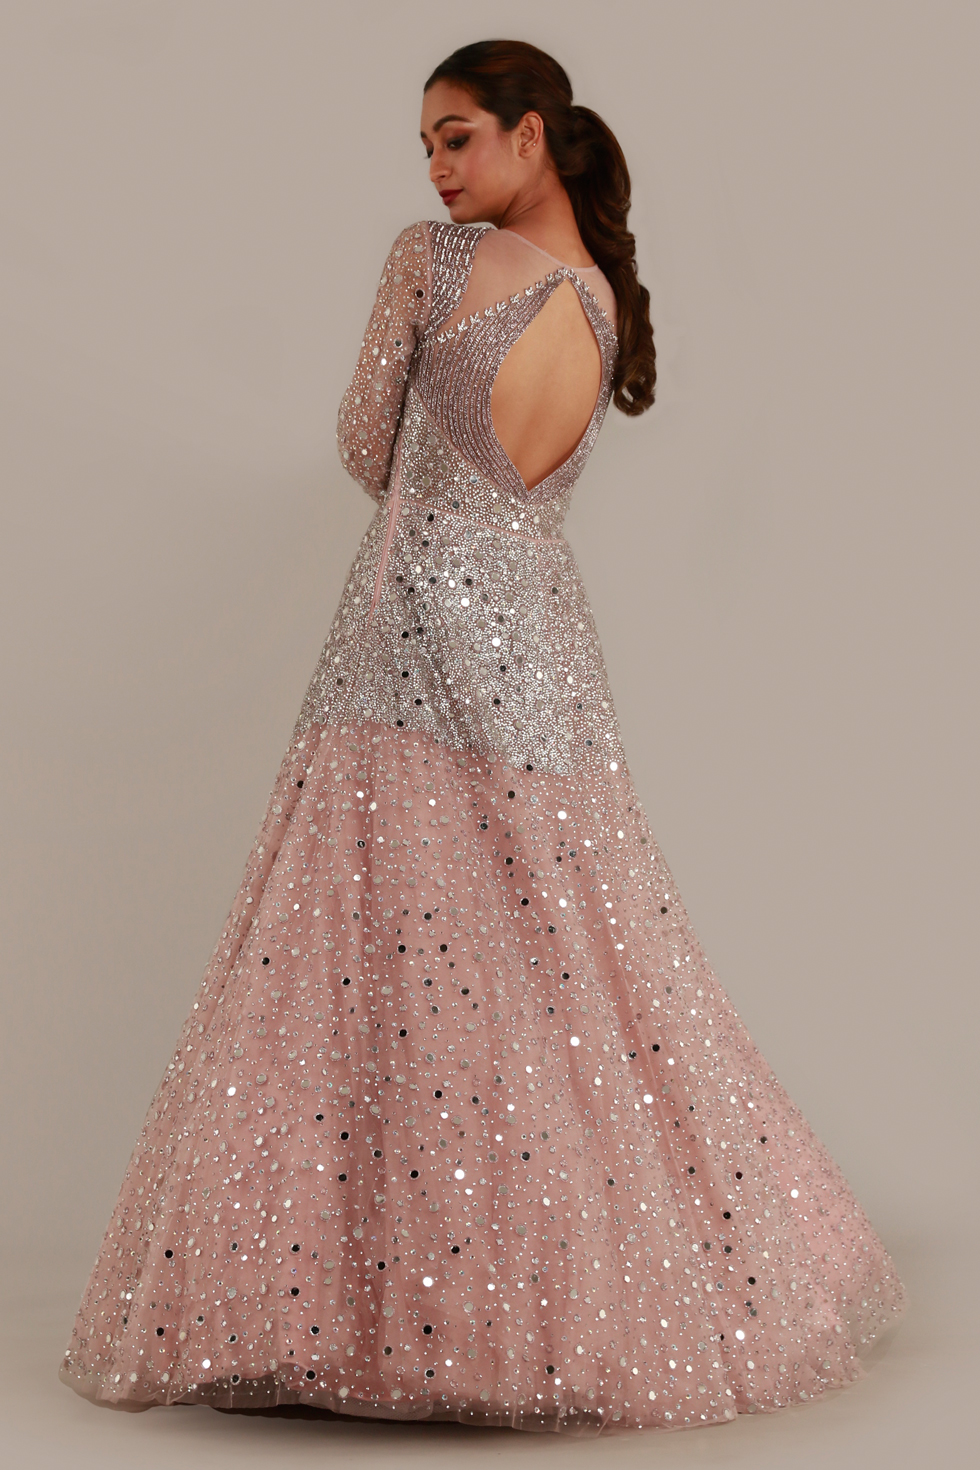 Baby pink shimmery tulle gown with illusion neckline and silver stone and mirror embellishments